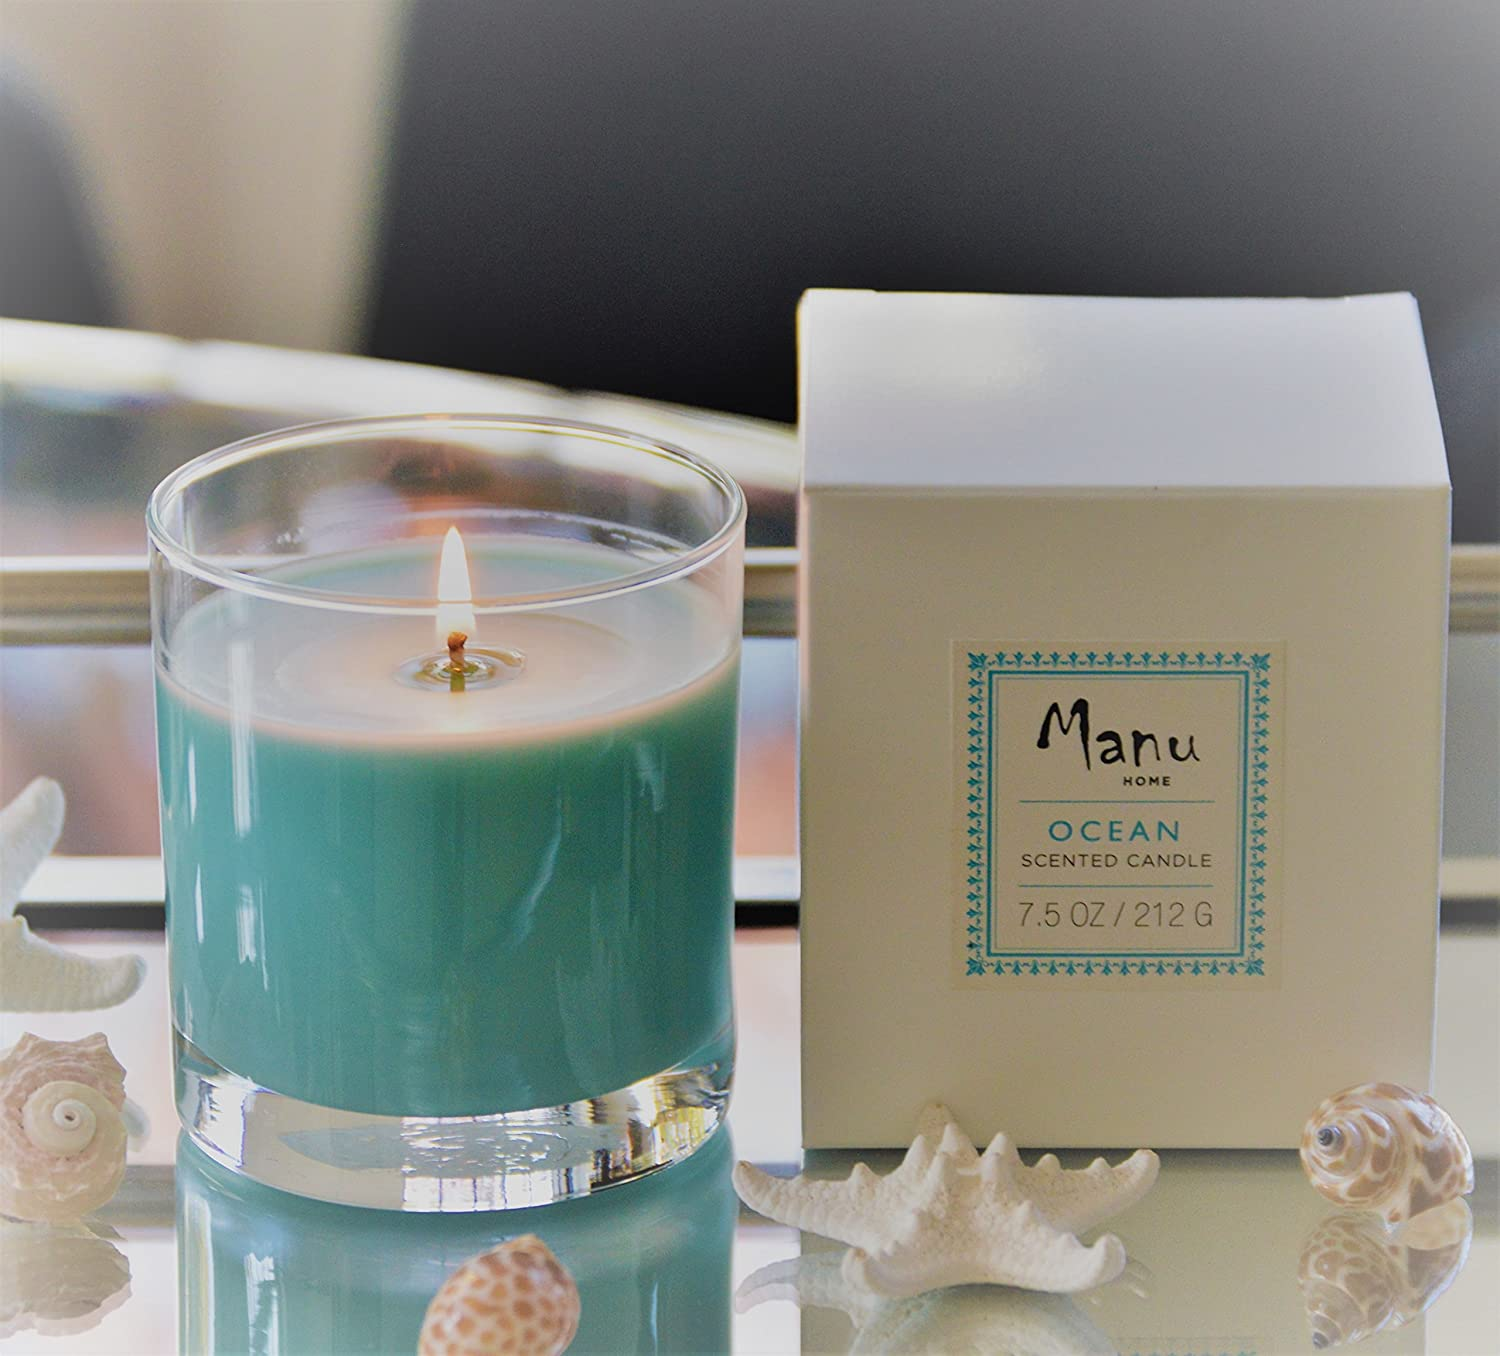 Manu Home Ocean Scented Candle ~ The Ocean Scent is soft and RELAXING ~ SOY Natural Wax used ~ Made in the USA!